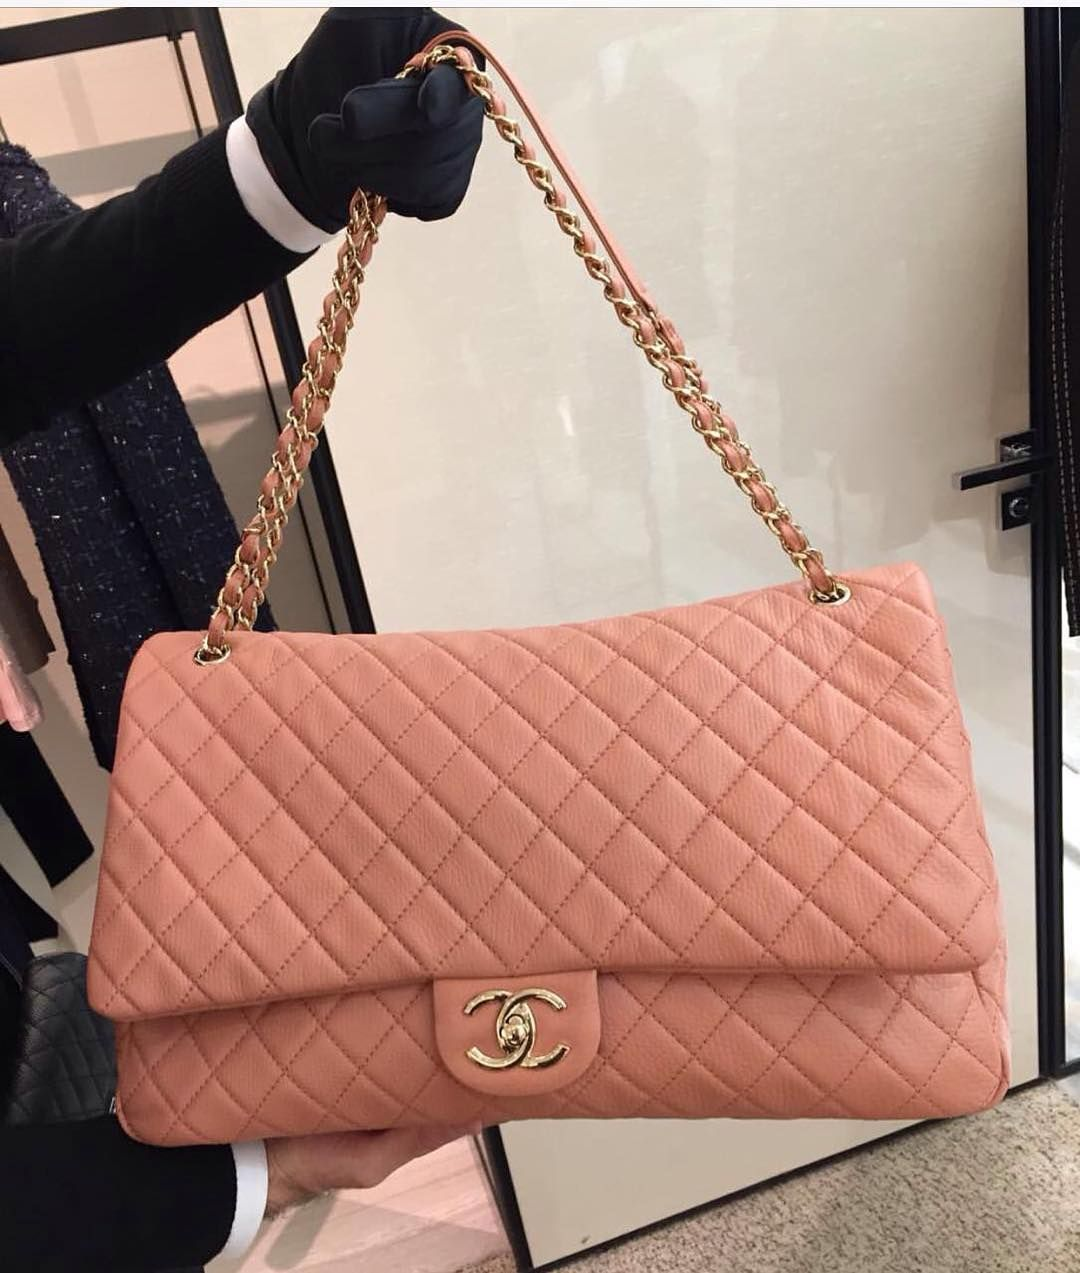 chanelxlflapbag Chanel Pinterest Bag